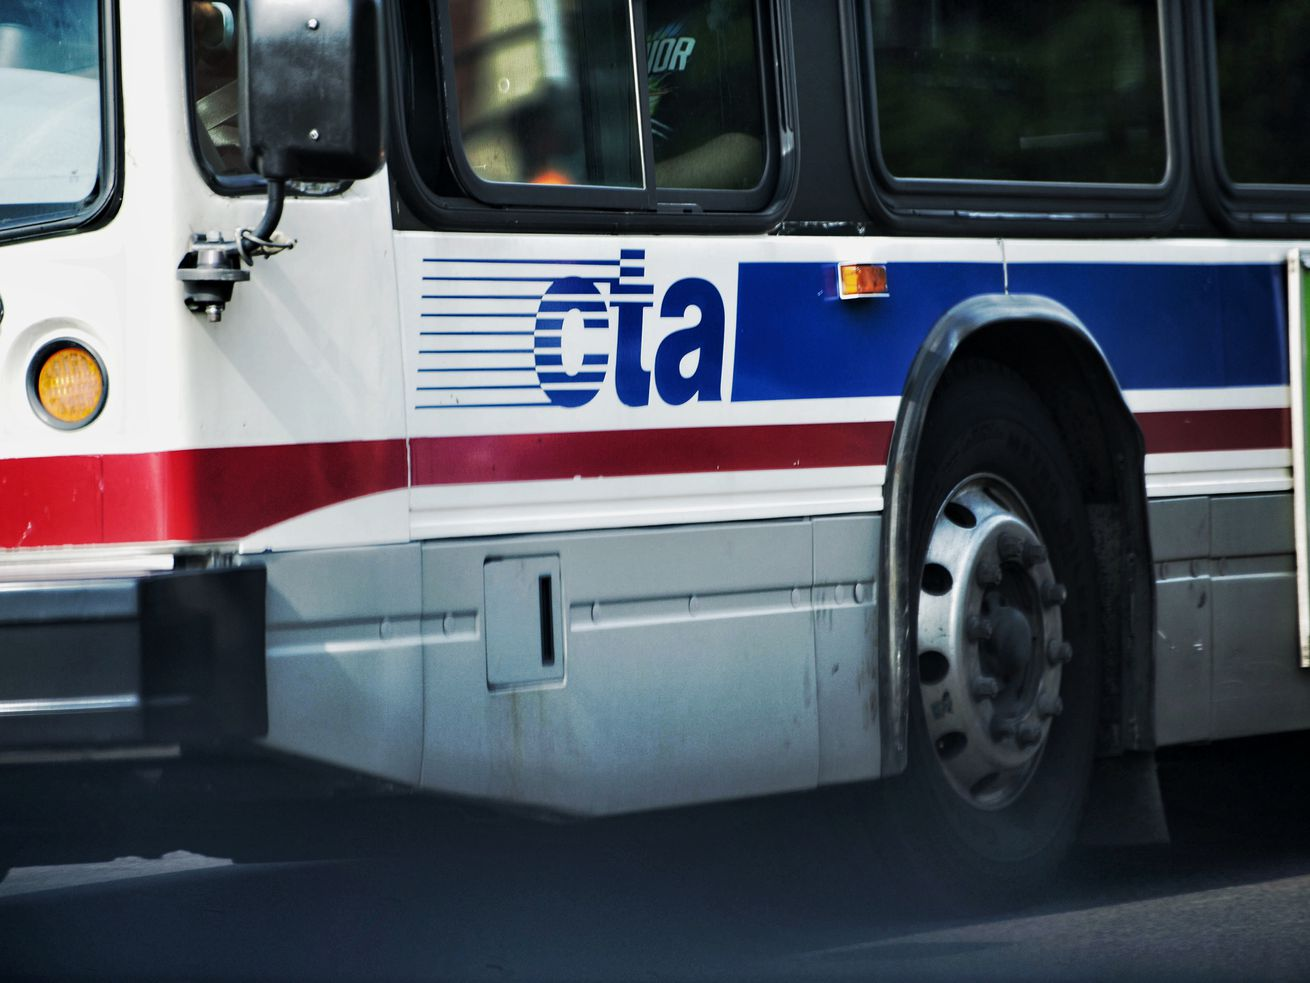 A passenger fired shots at CTA bus driver April 18, 2021 in South Chicago.